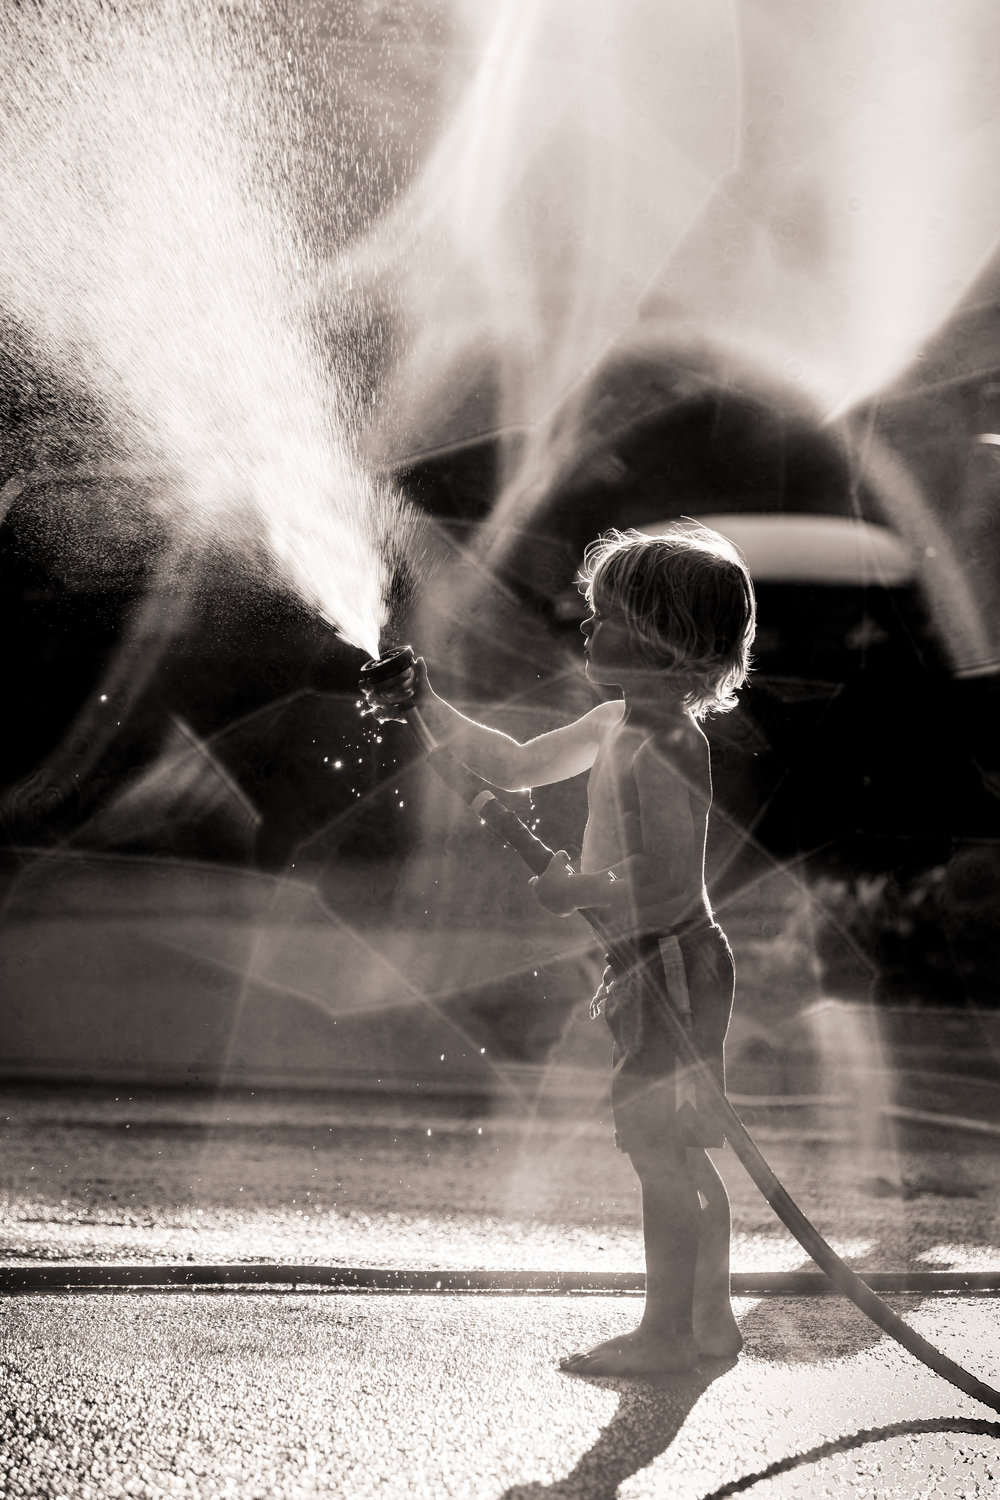 Hanging out with my favorite neighbor and model playing with the hose .